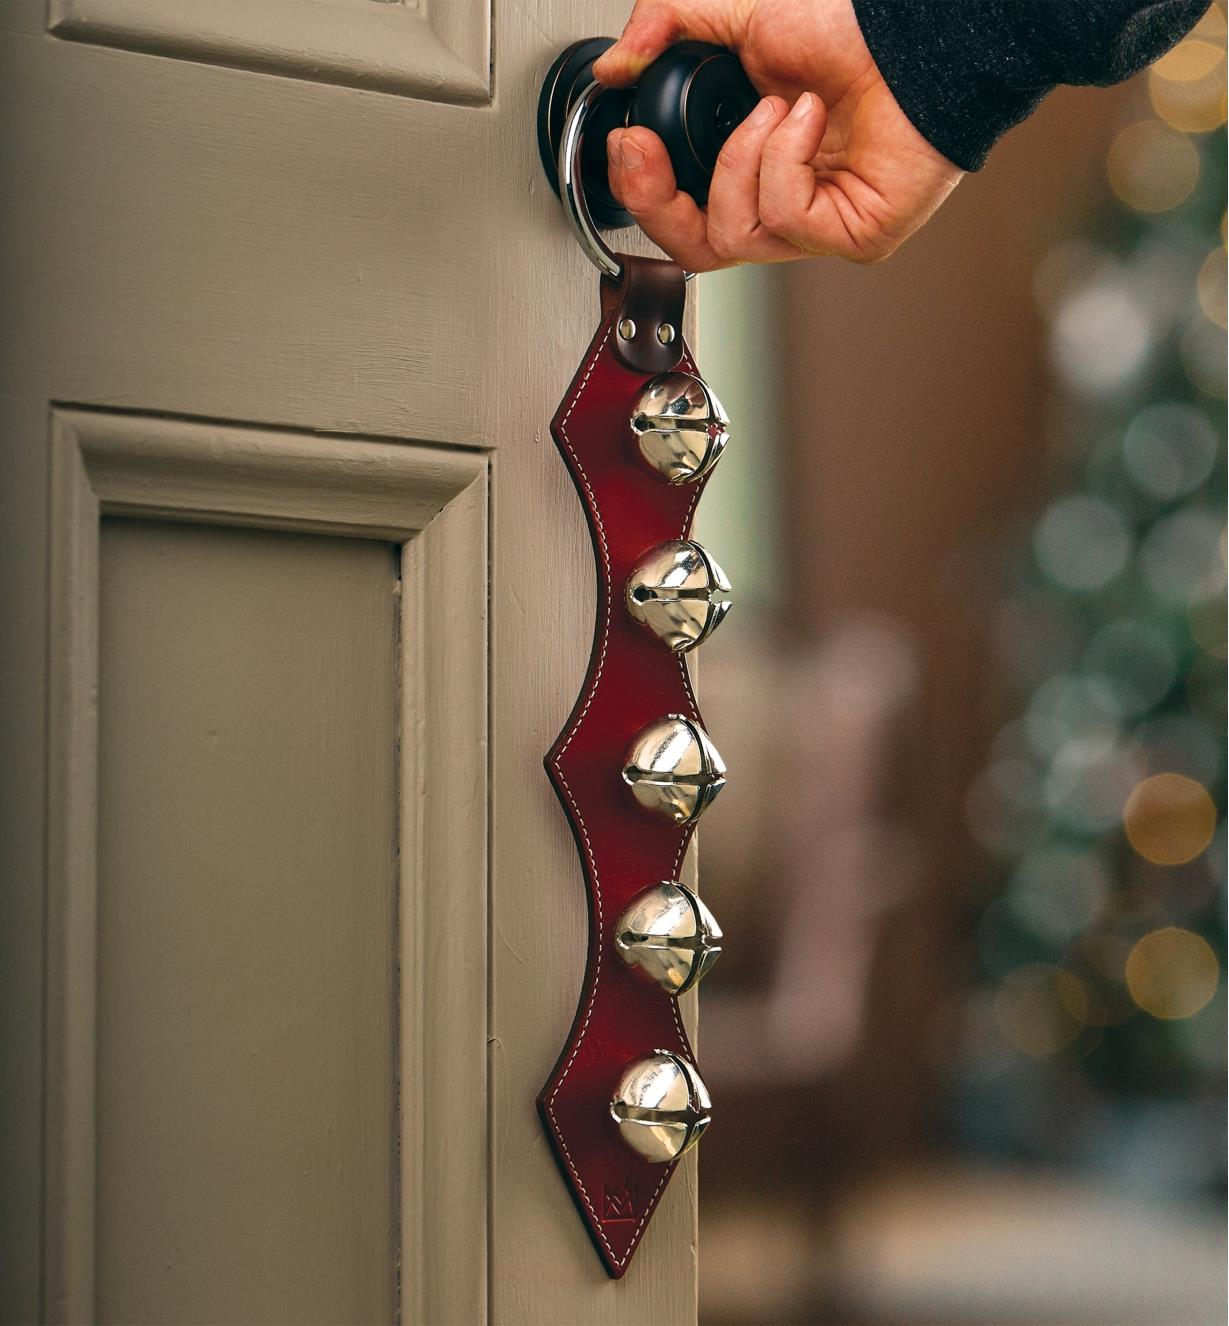 The five-bell hanger hangs from a doorknob